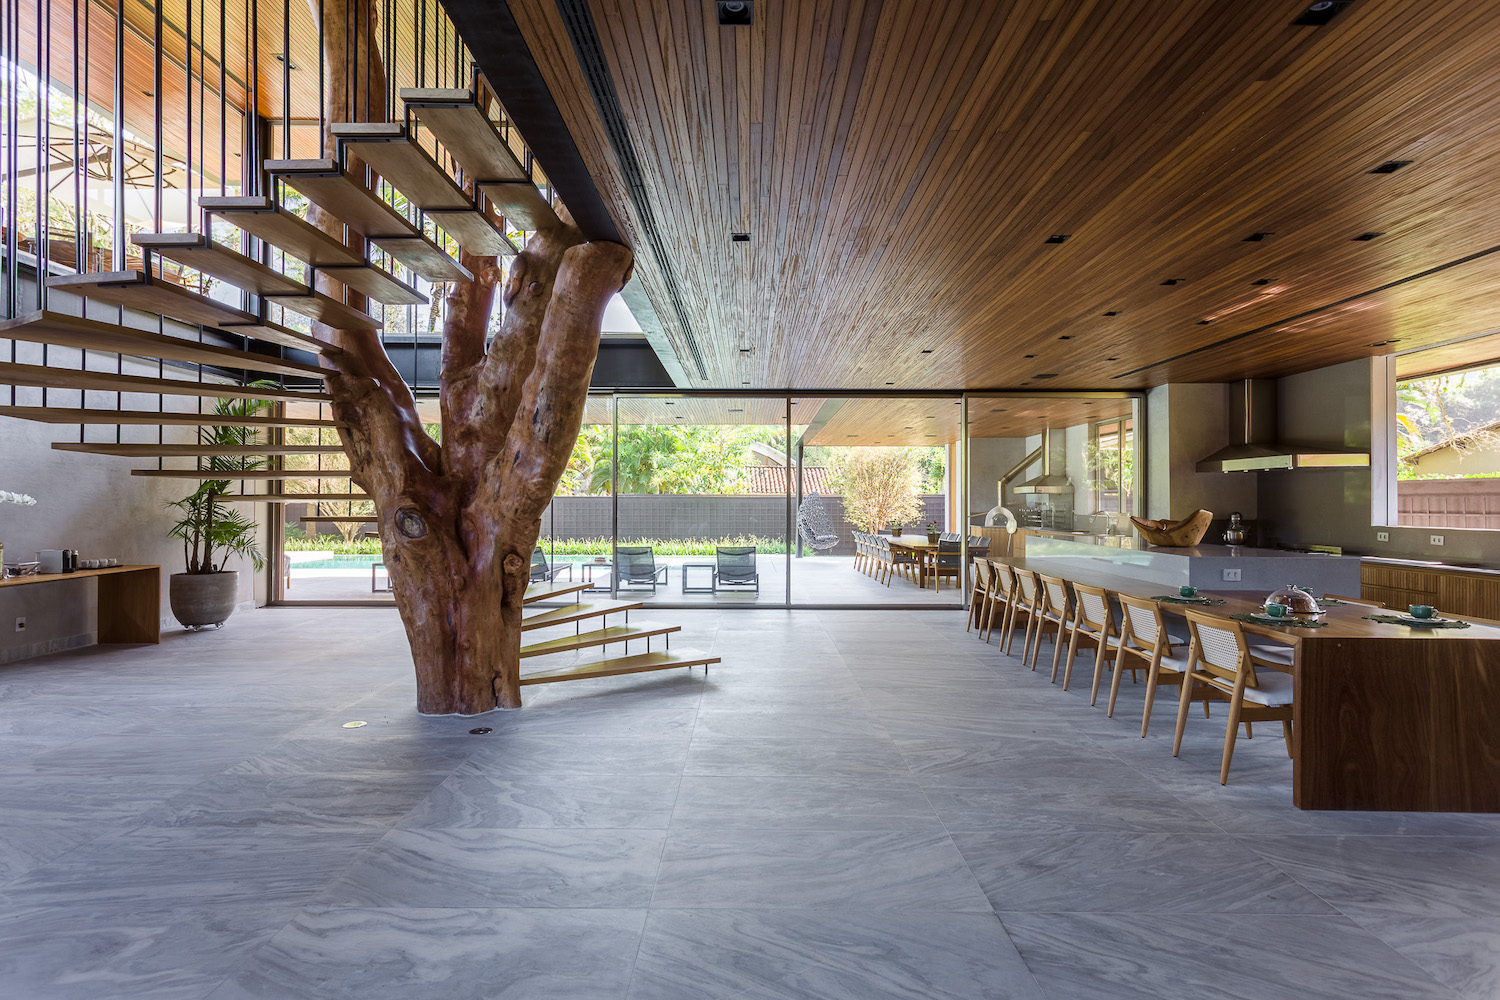 spiral wooden staircase around a tree that grown inside the house